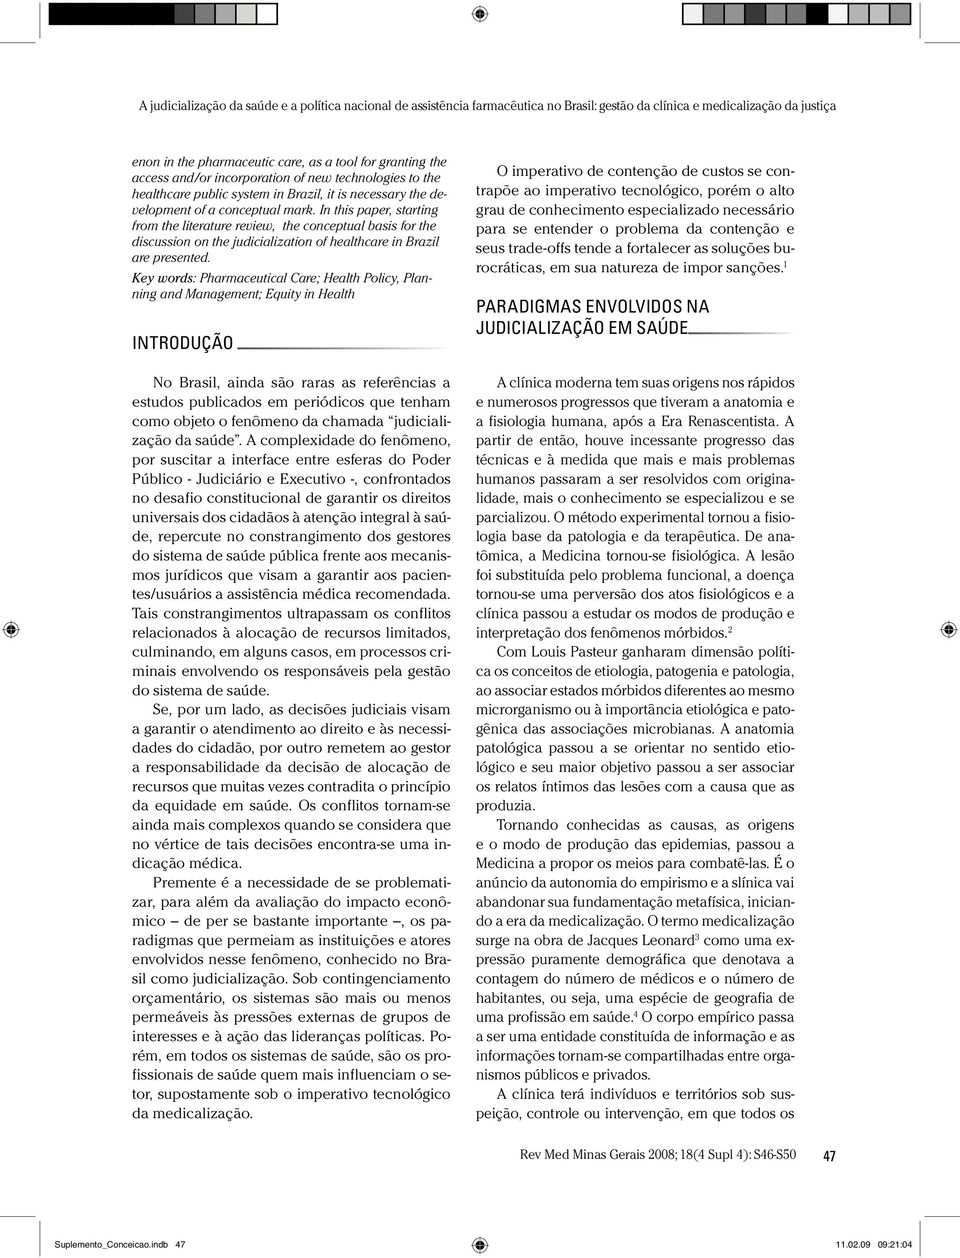 Key words: Pharmaceutical Care;Health Policy, Planning and M anagement;equity in Health IN T R O D U Ç Ã O N o Brasil, ainda são raras as referências a estudos publicados em periódicos que tenham com